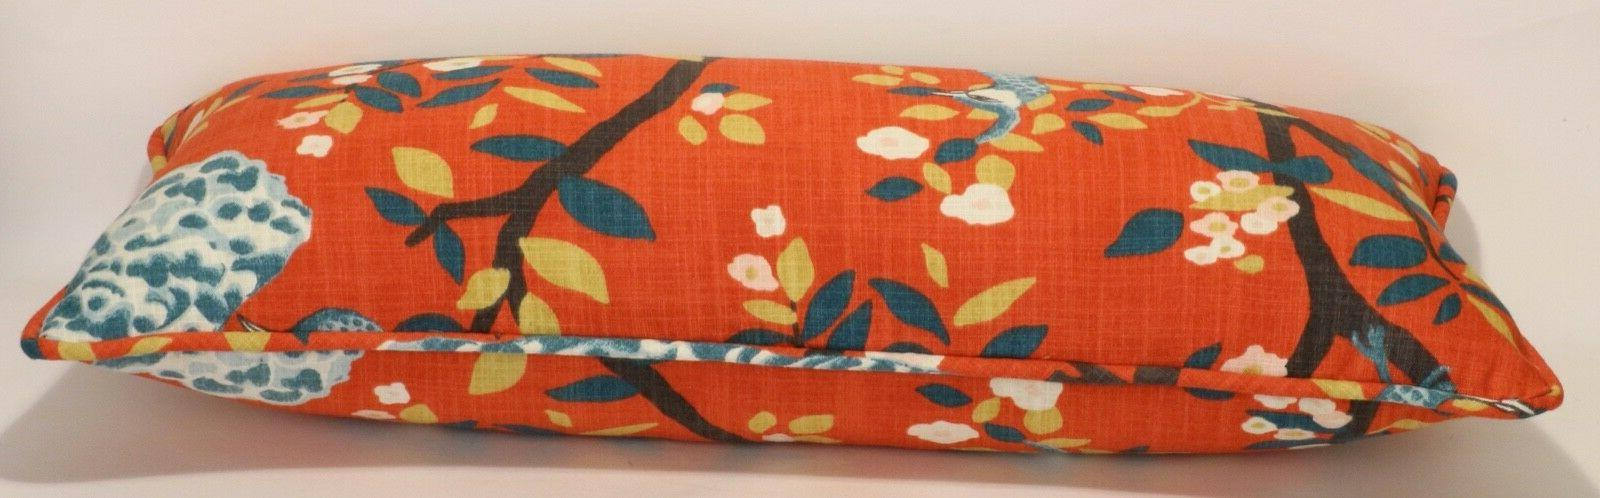 "1 26"" Persimmon Plume Floral Decorative Throw &"